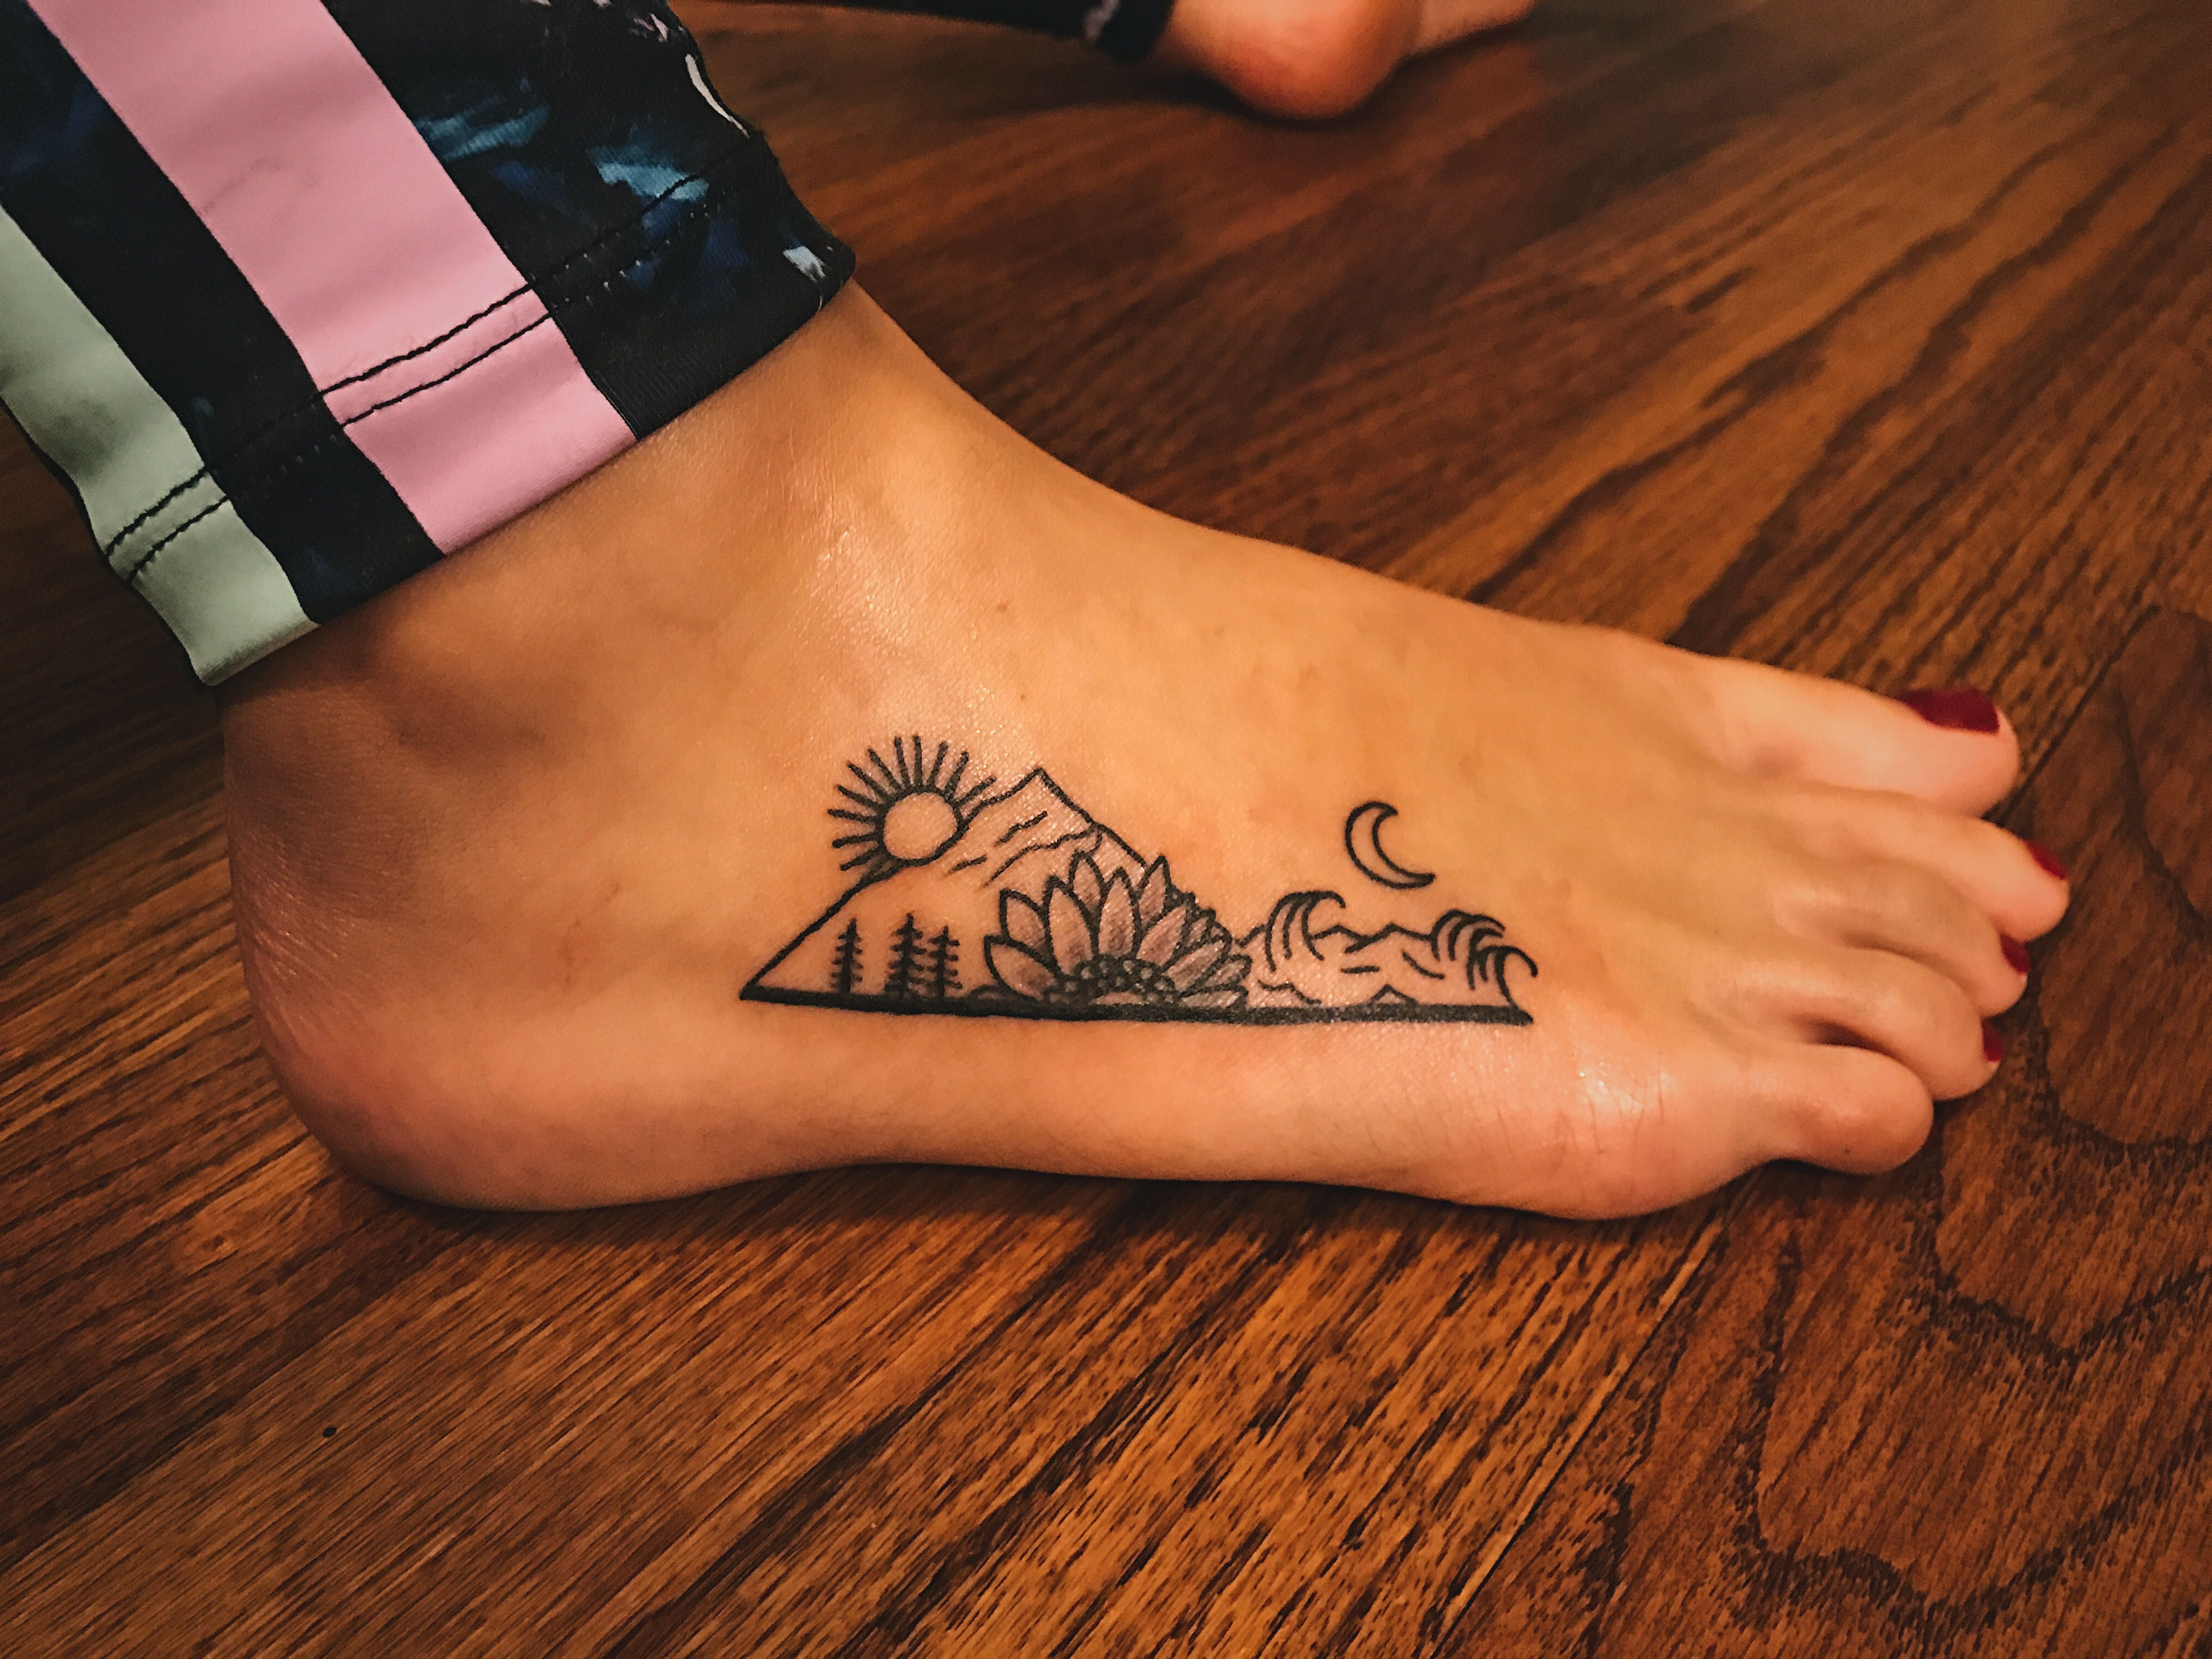 2017 01 small tattoo designs for women on foot - Waves Mountain Sunflower Tattoo Nature_tattoo_quotes